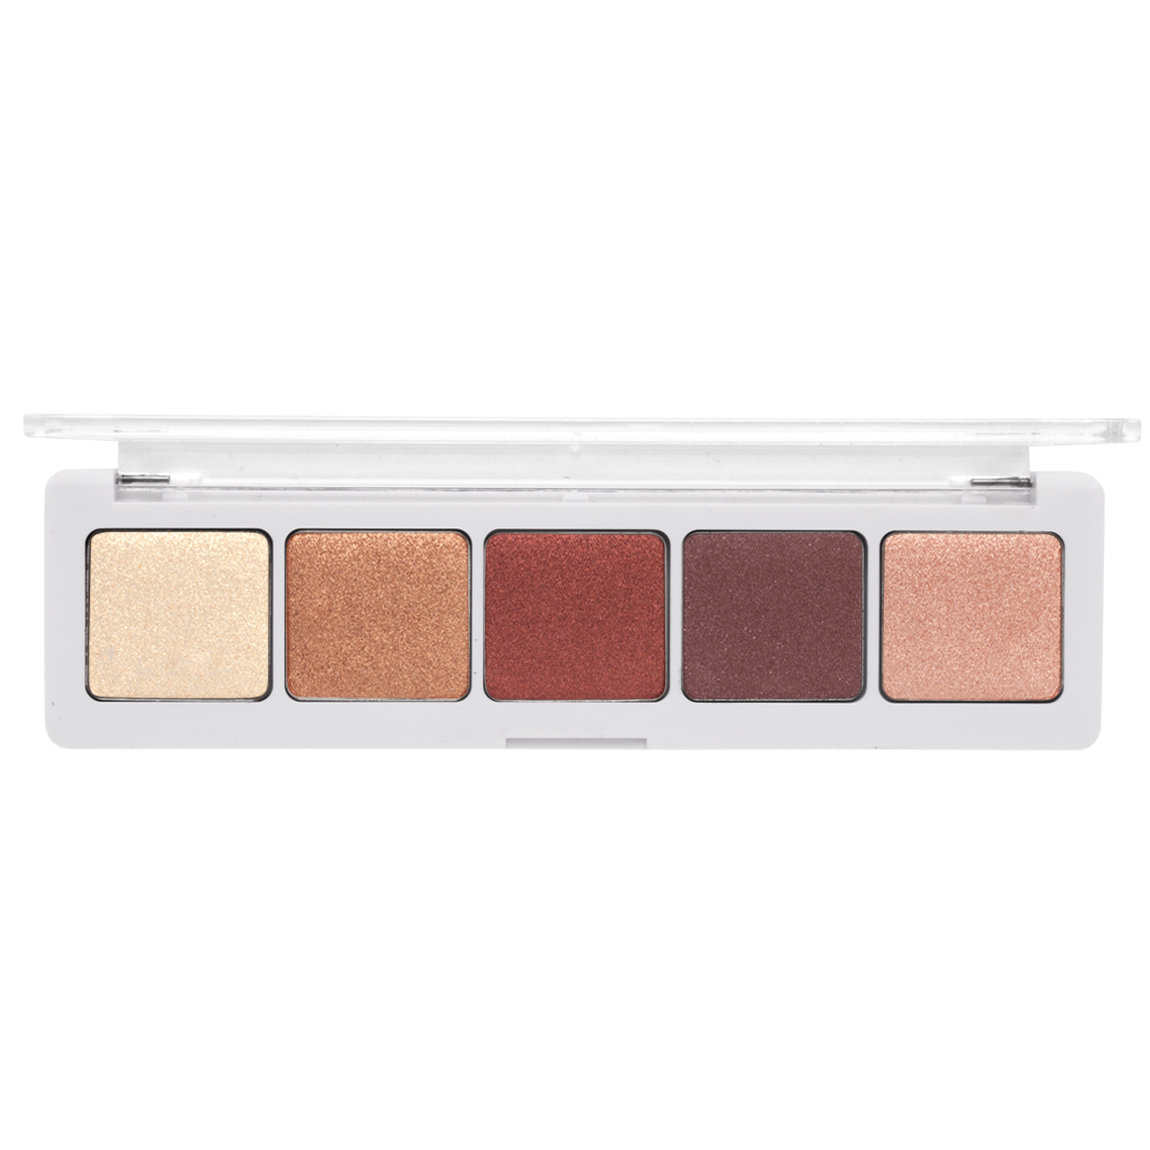 Natasha Denona Eyeshadow Palette 5 Palette 04 alternative view 1 - product swatch.